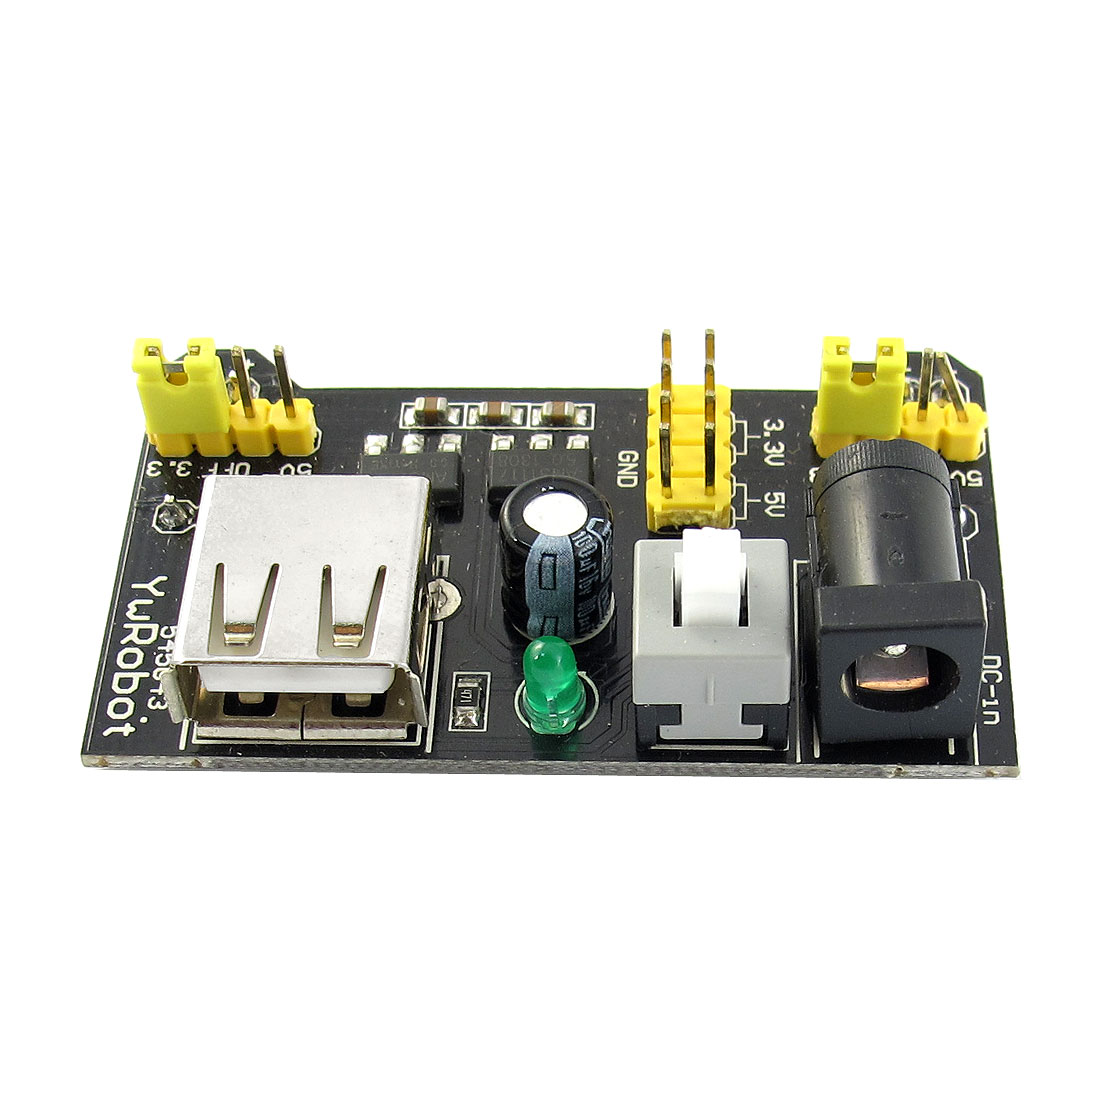 DC6.5-12V to DC 5V 3.3V 6.4mm DC Power Jack USB2.0 Charging Breadboard Dedicated Power Supply PCB Module